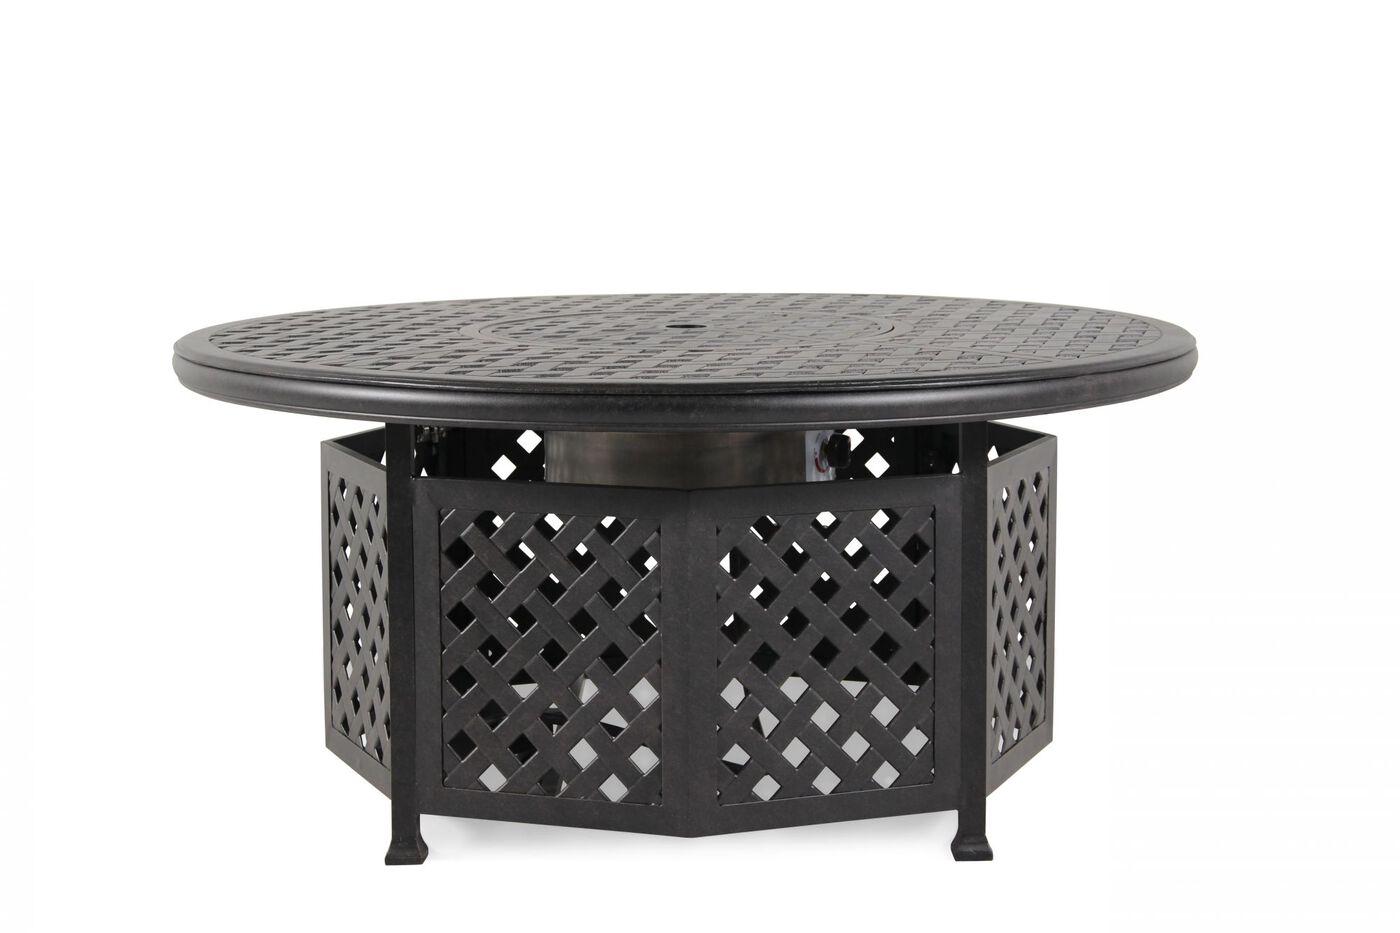 Mathis Brothers Patio Furniture world source castle rock chat fire pit table | mathis brothers